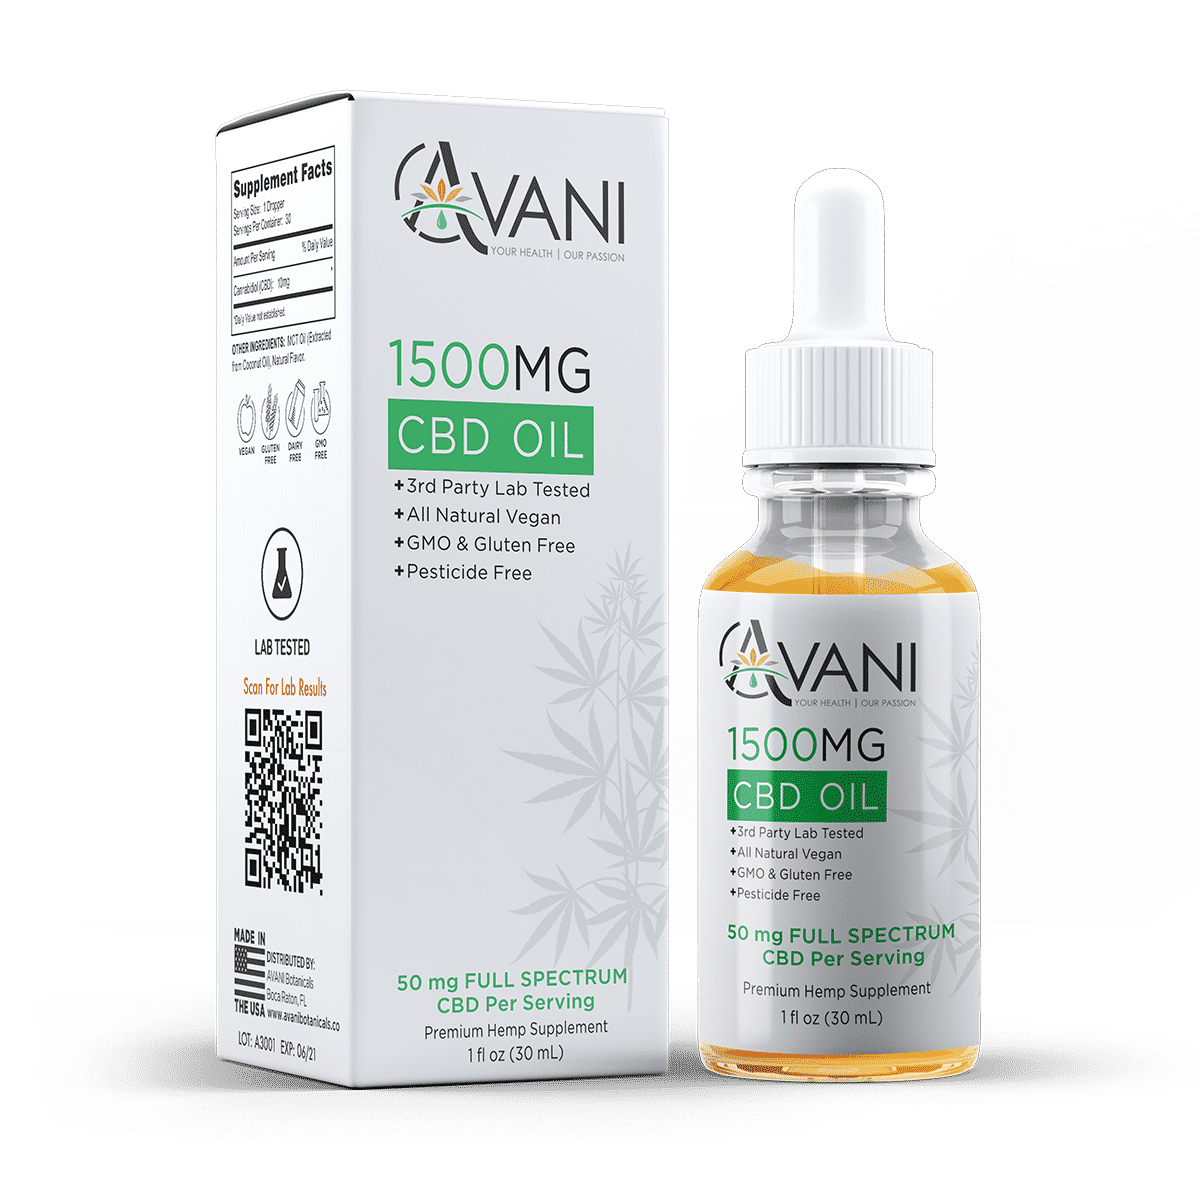 1500mg-Tincture-Box-PNG.png